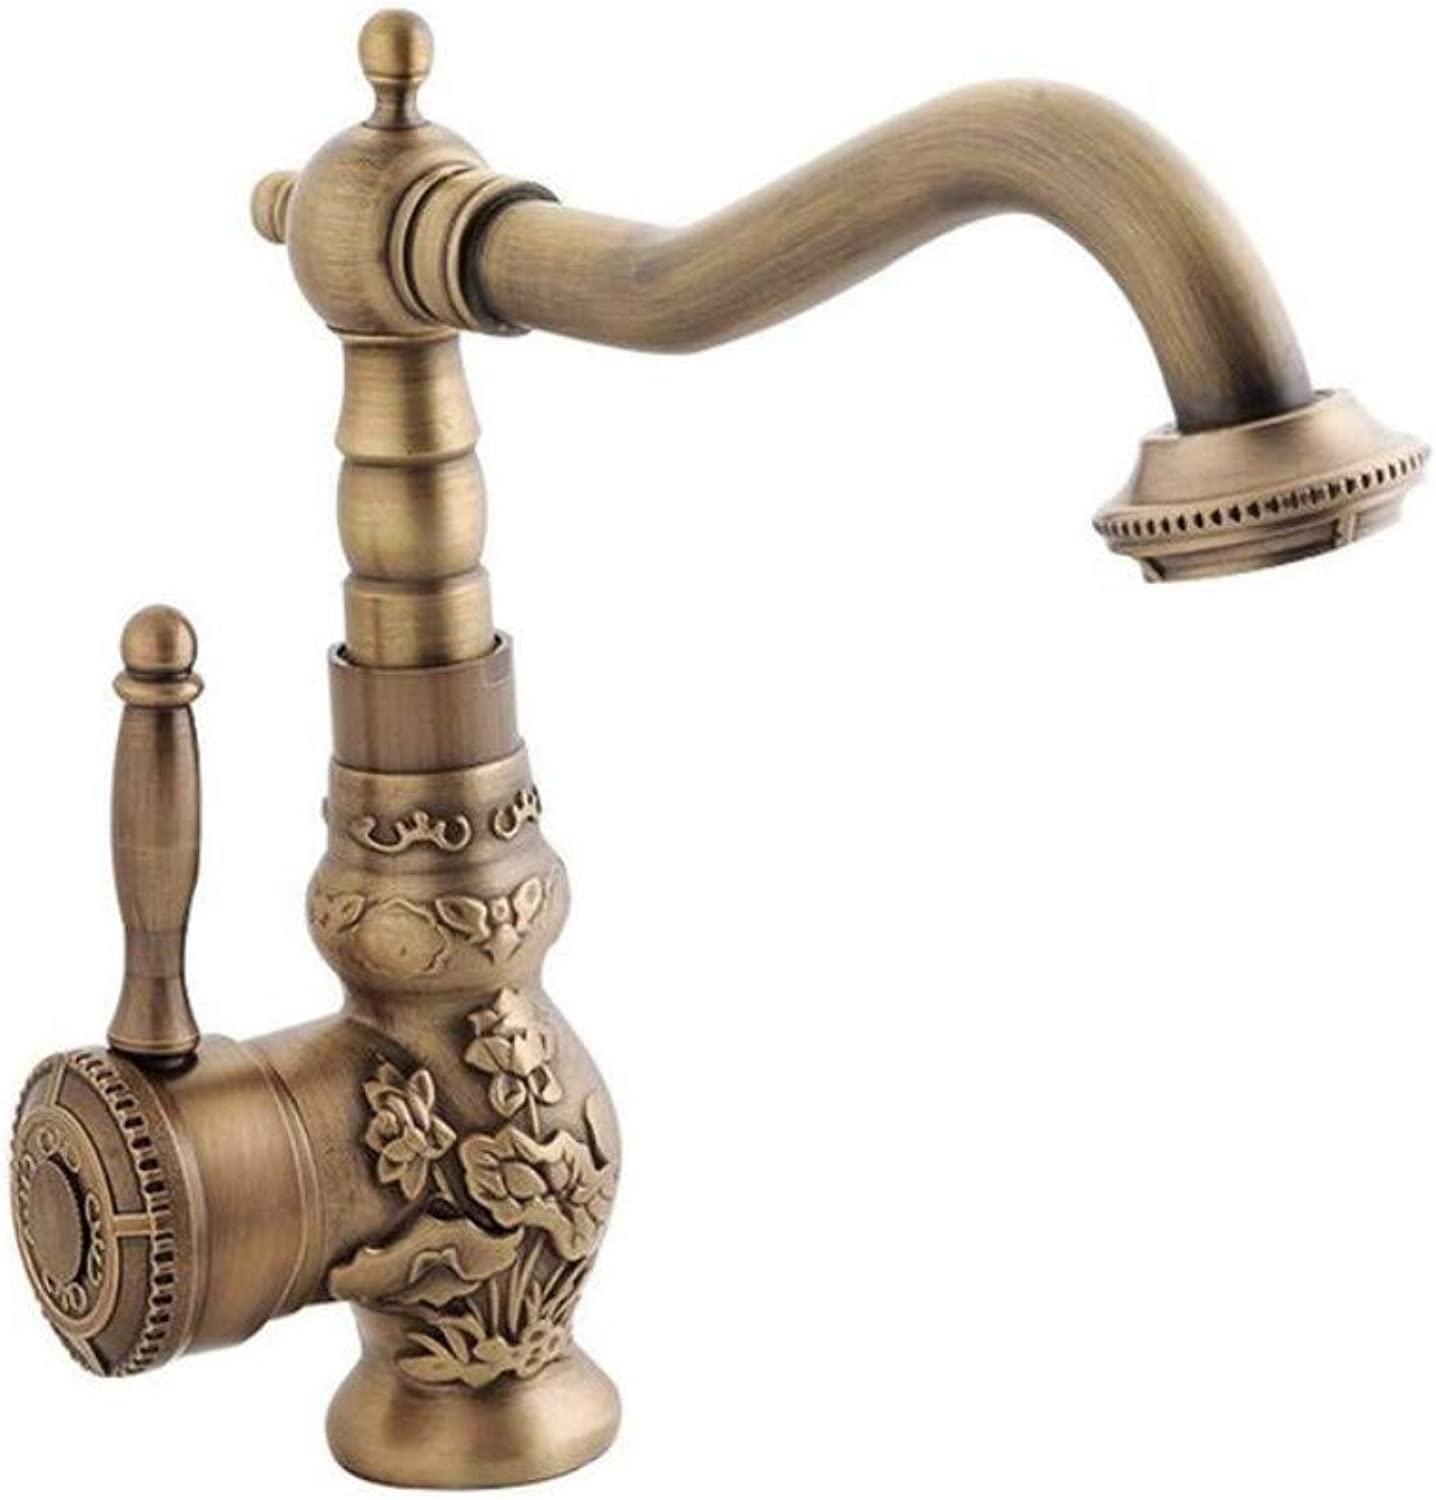 Brass Chrome Kitchen Bathroom Faucet Carving Tap Hot & Cold redate Single Handle Taps Water Mixer